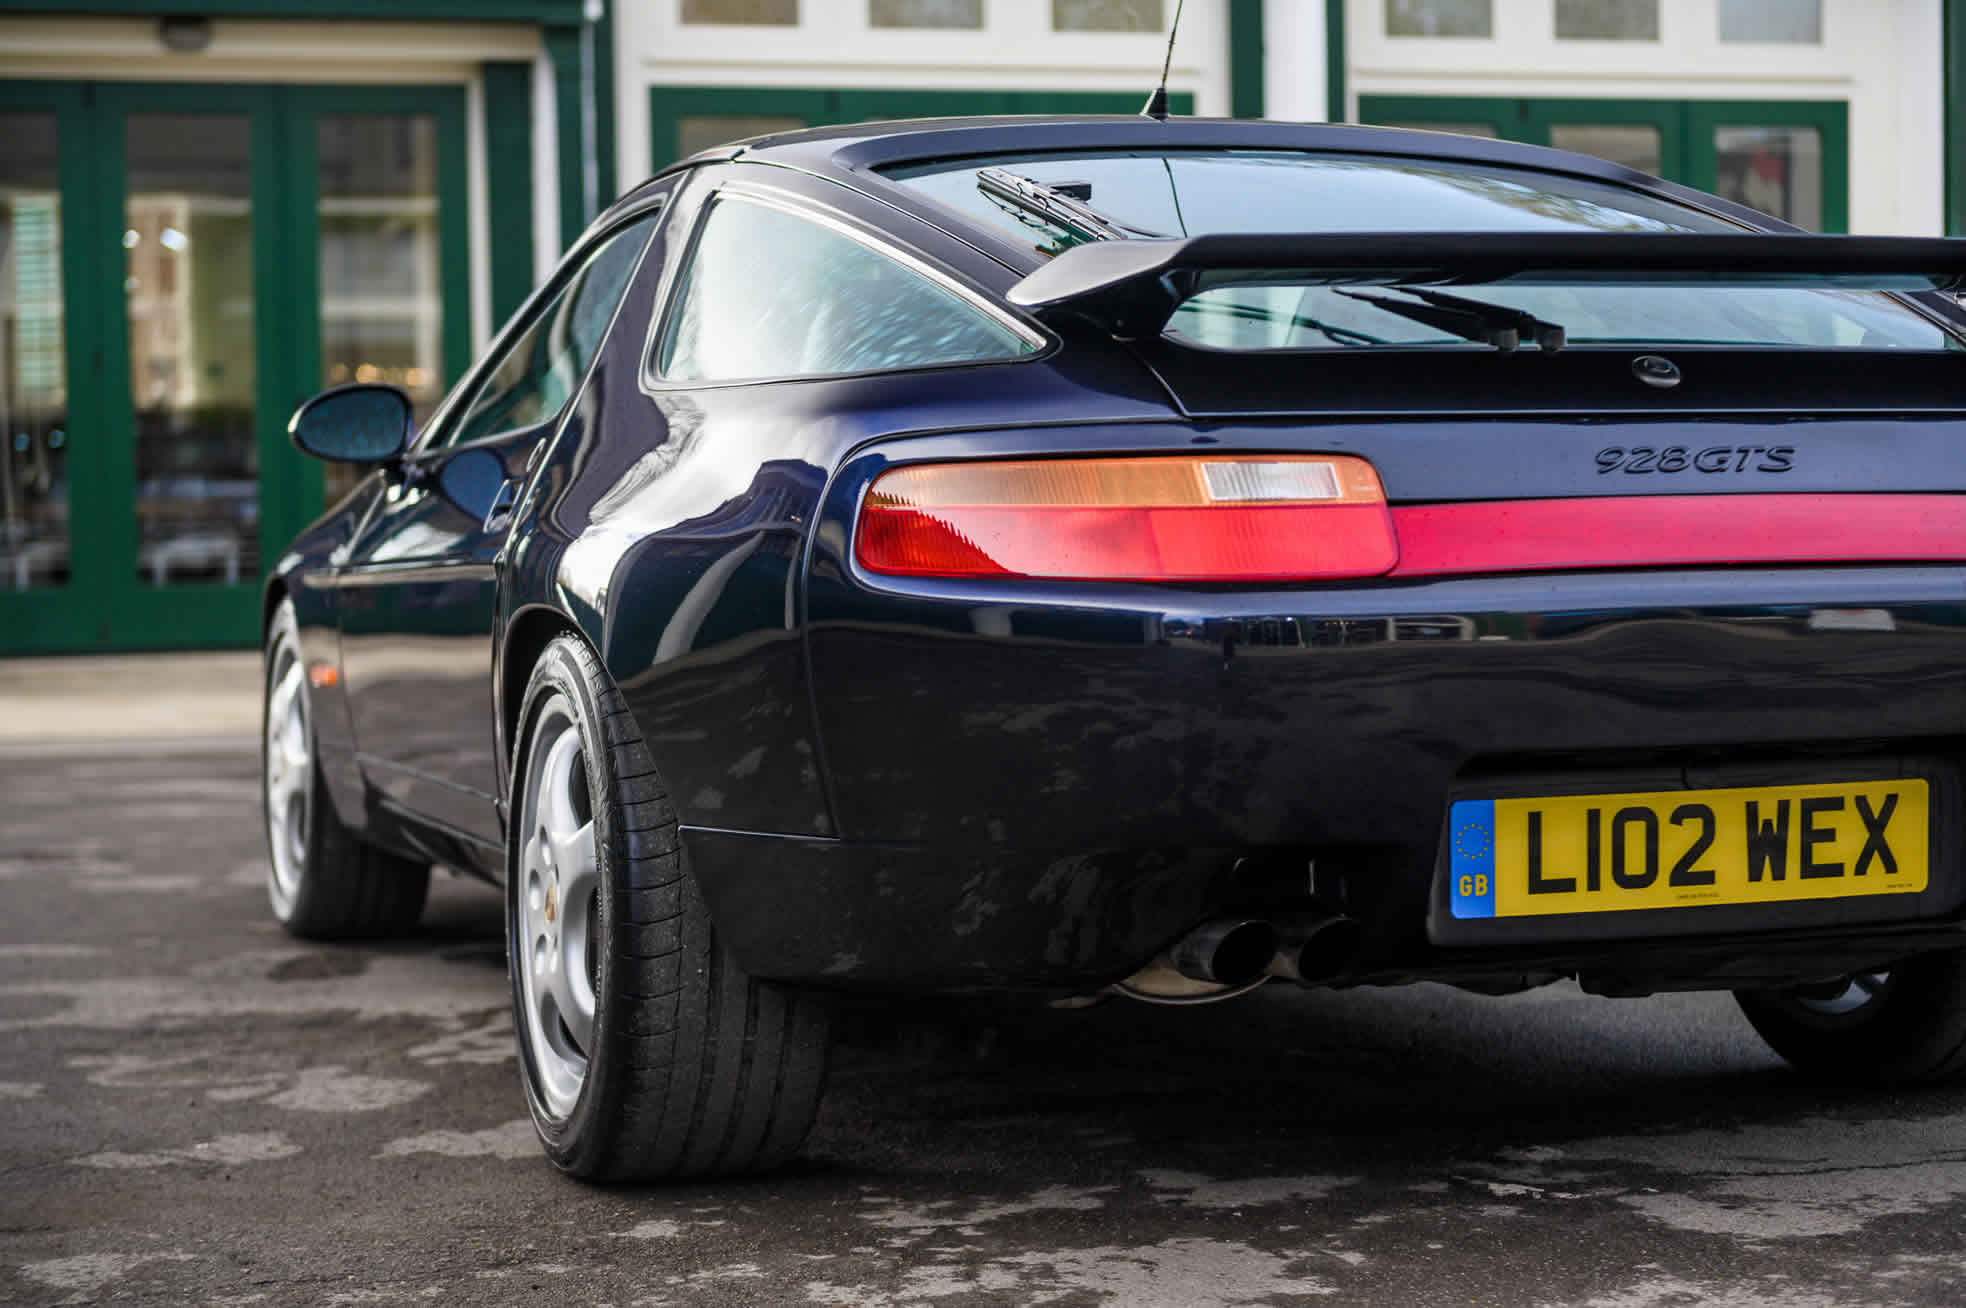 For Sale, 1992 Porsche 928 GTS, Sports Purpose Porsche Specialists, rear quarter view